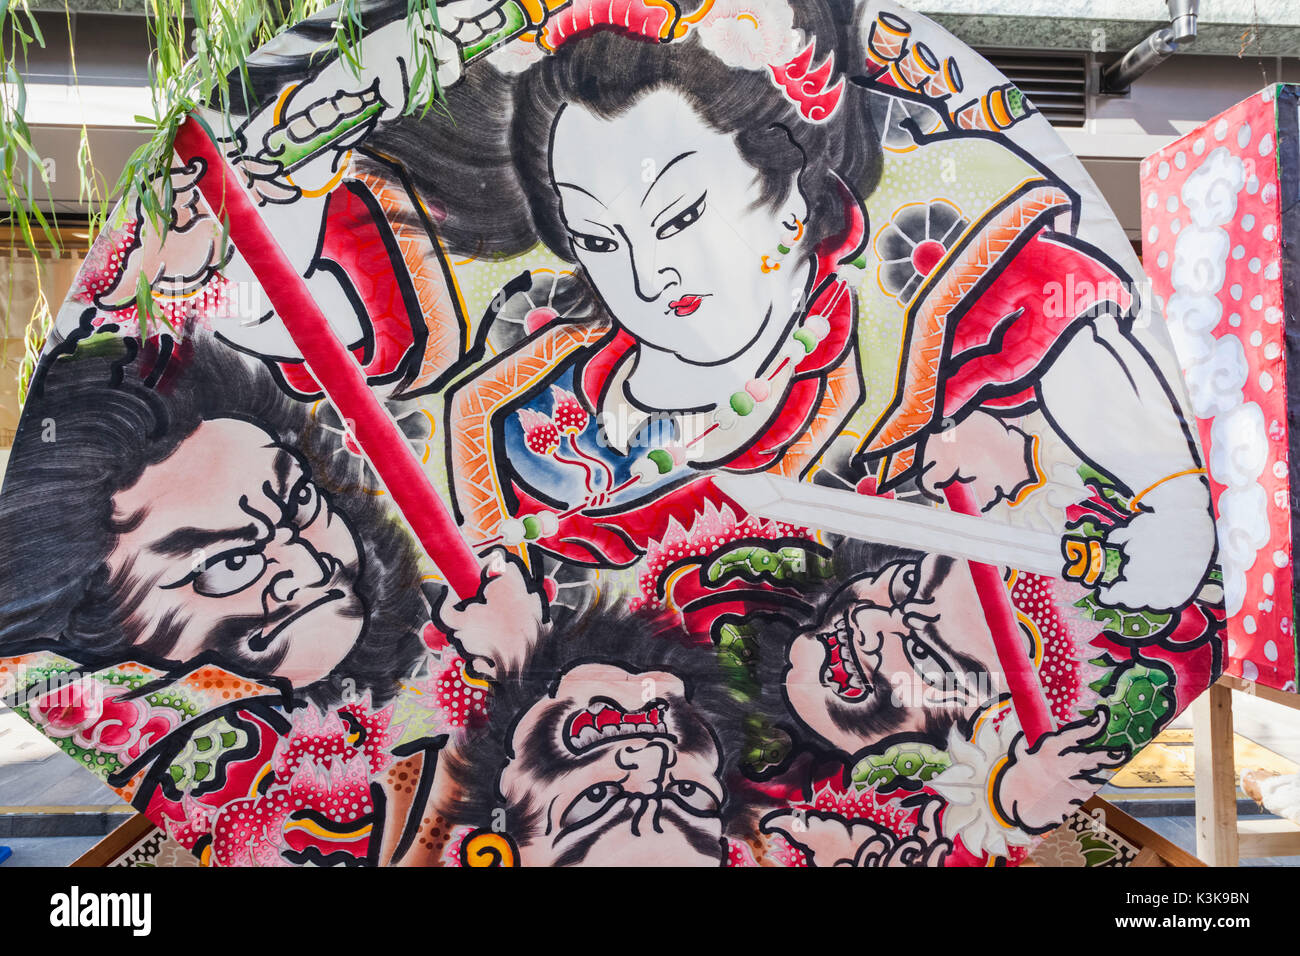 Japan, Hoshu, Tokyo, Asakusa, Nebuta Festival, Float with depictions of Warrior Figures - Stock Image